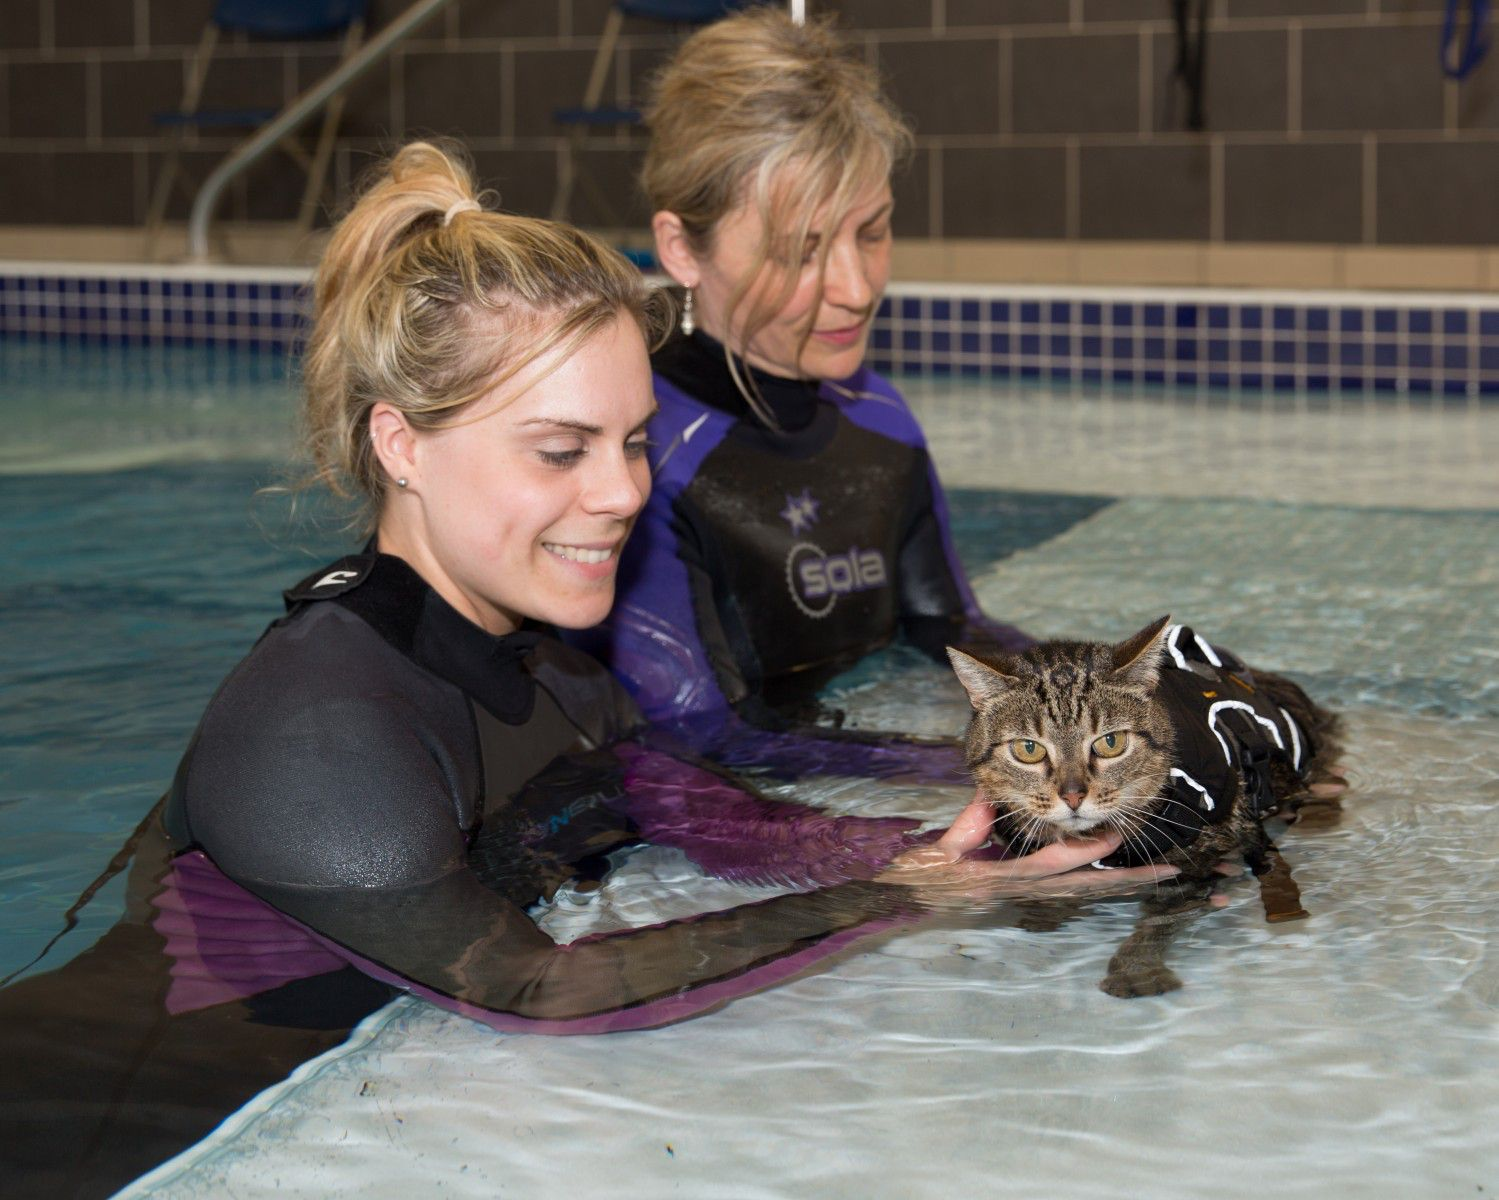 Cat having hydrotherapy at Fitzpatrick Referrals Orthopaedics and Neurology Hospital Eashing